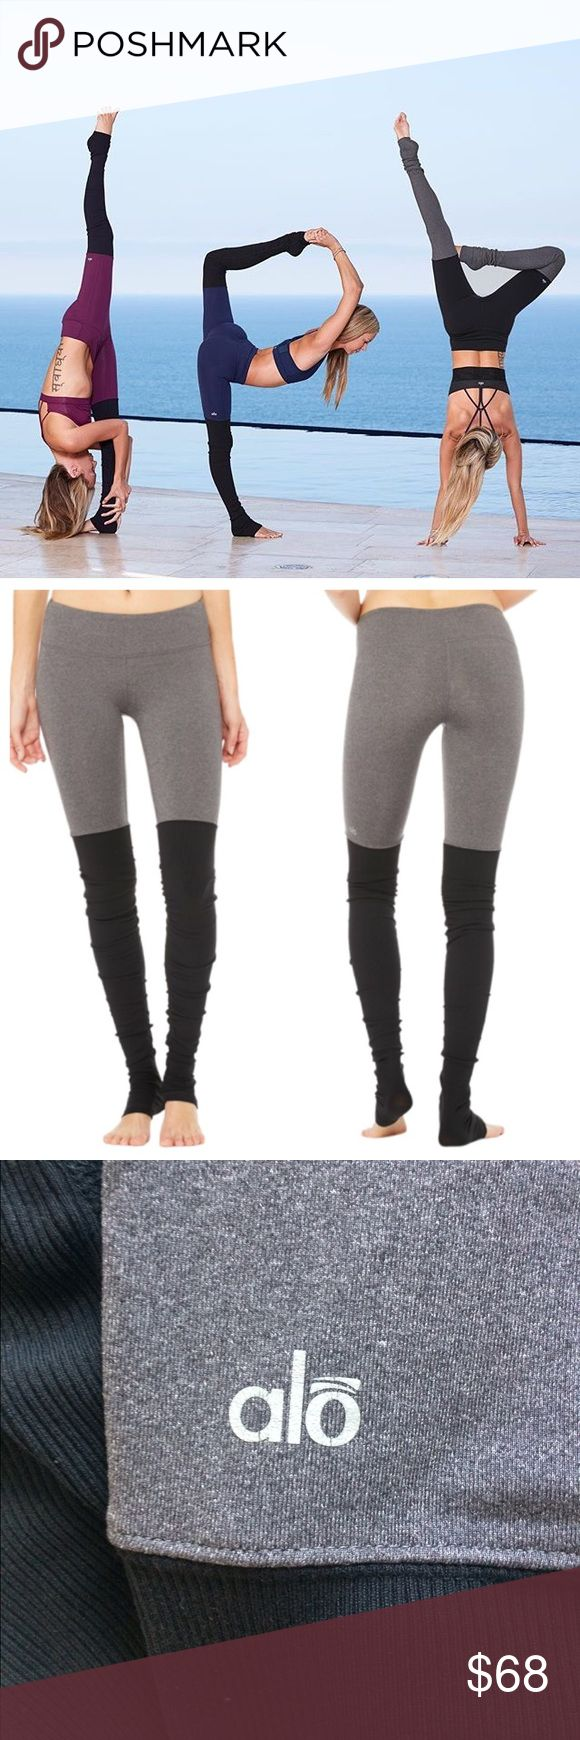 """Alo Yoga Goddess Leggings EUC. tag indicating size on the inside back waistband was cut off due to skin irritation. Color is """"stormy heather and black."""" """"Longer inseam 31.5in with ribbed contrast scrunches like legwarmers. Flat seaming for a smooth, more comfortable fit. Hidden key/card pocket in waistband. Our patent-pending Goddess Ribbed Legging features ultimate performance fabric that slims inner and outer thighs and seriously lifts your booty. New waistband engineering is tummy…"""